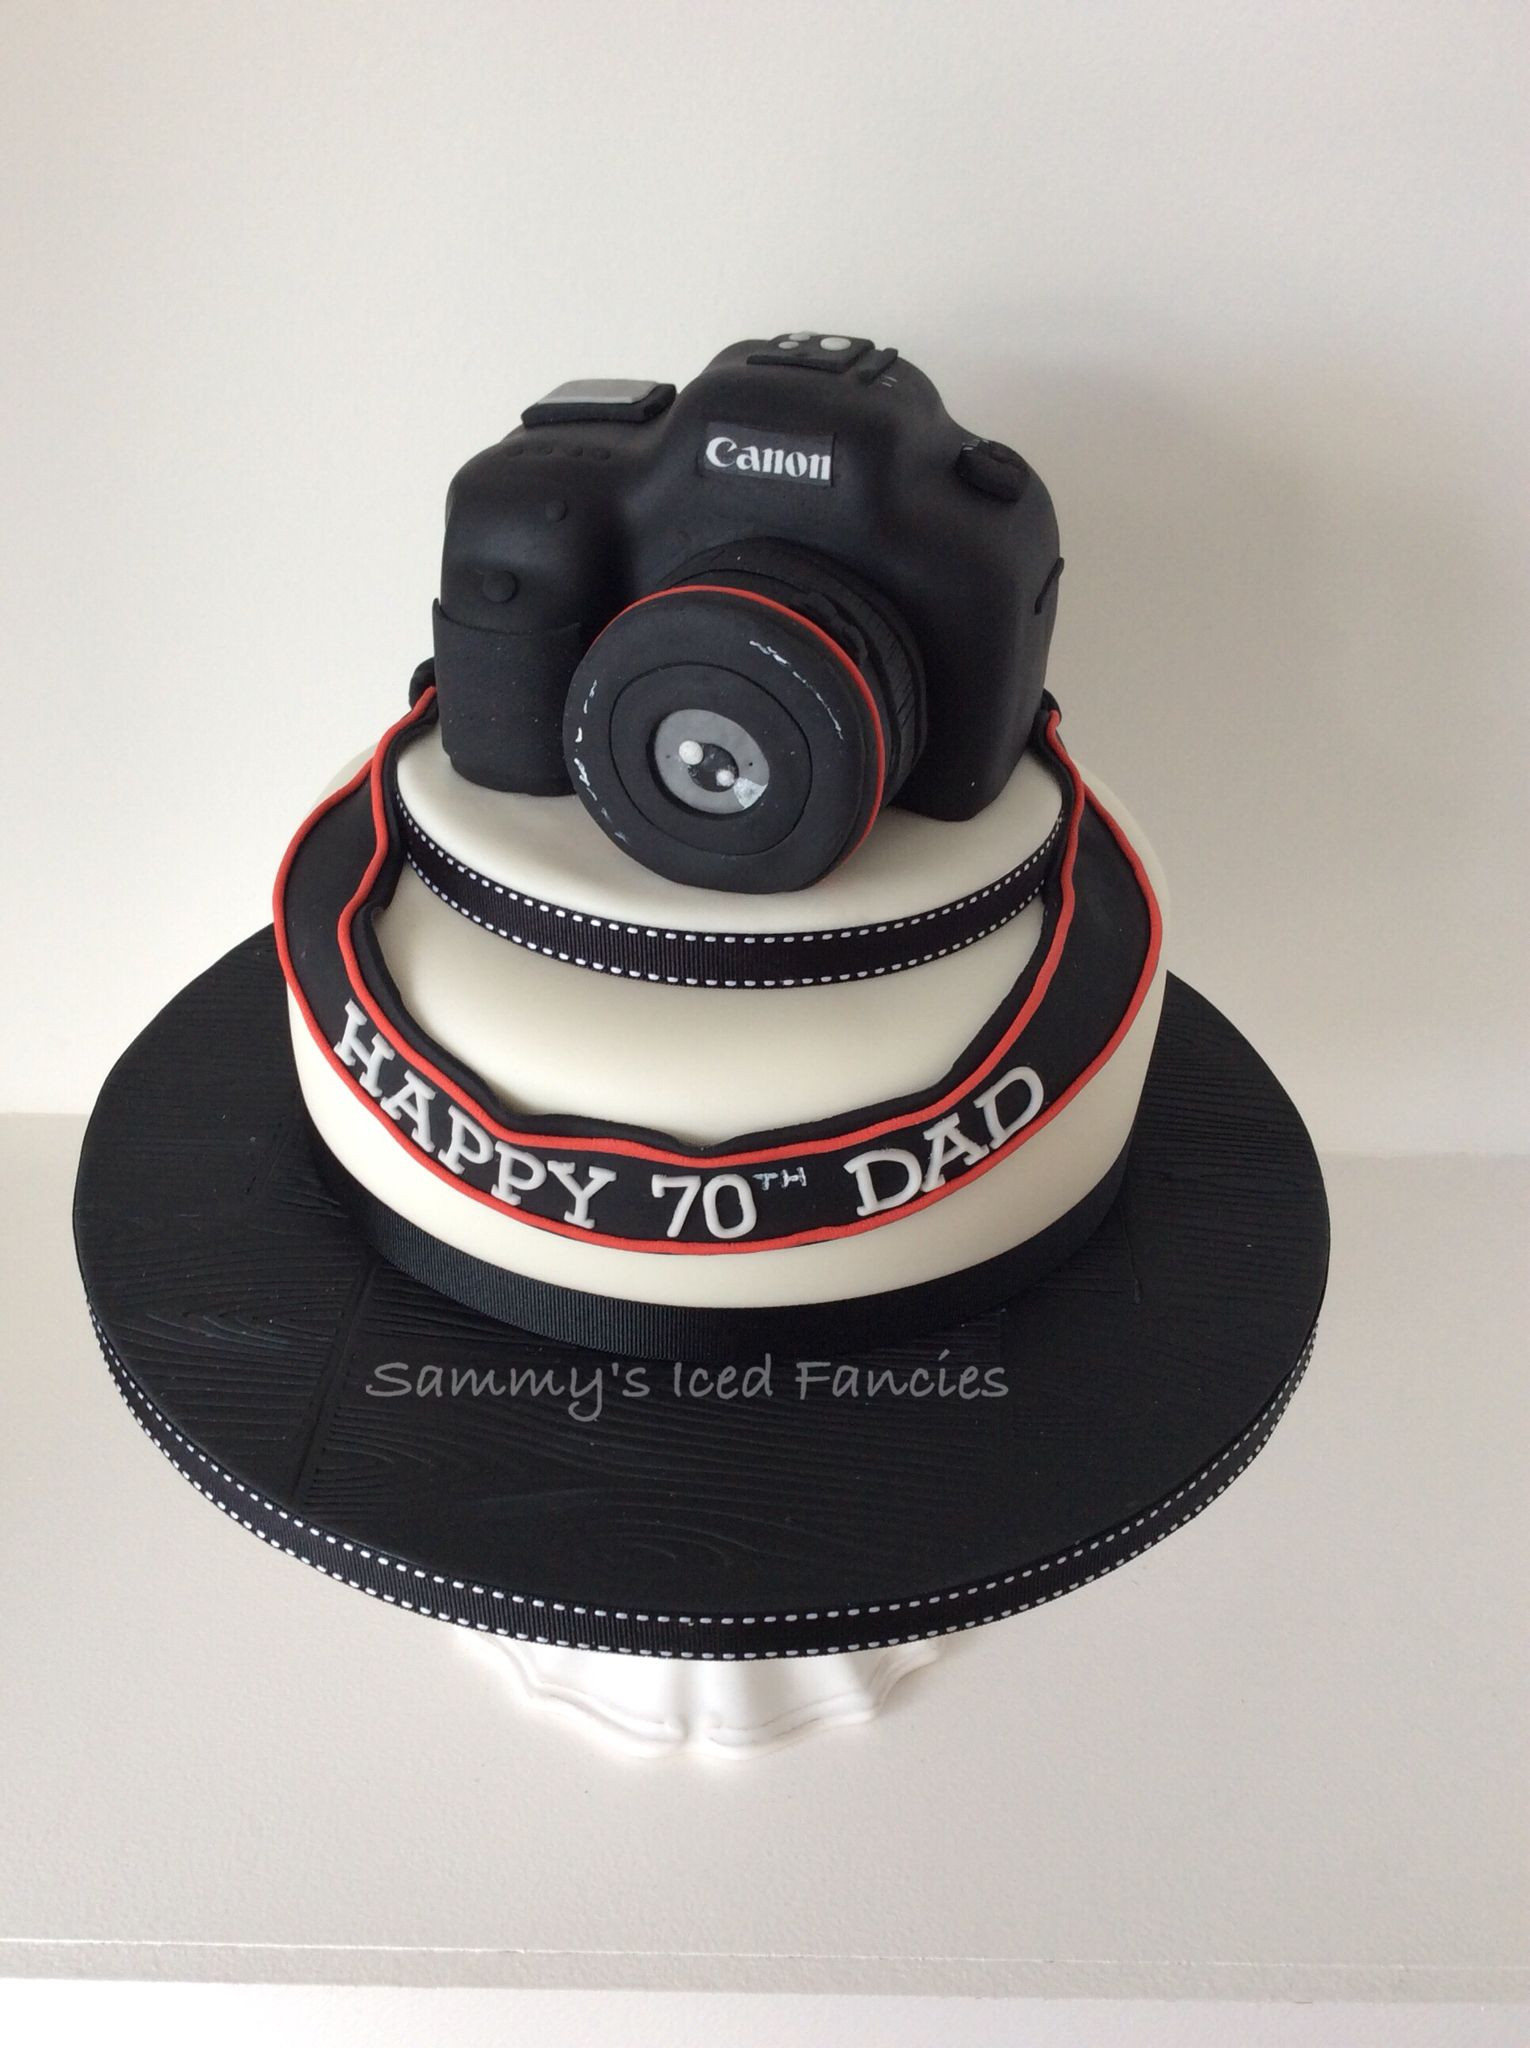 Best ideas about Camera Birthday Cake . Save or Pin Camera 70th birthday cake My cakes in 2019 Now.